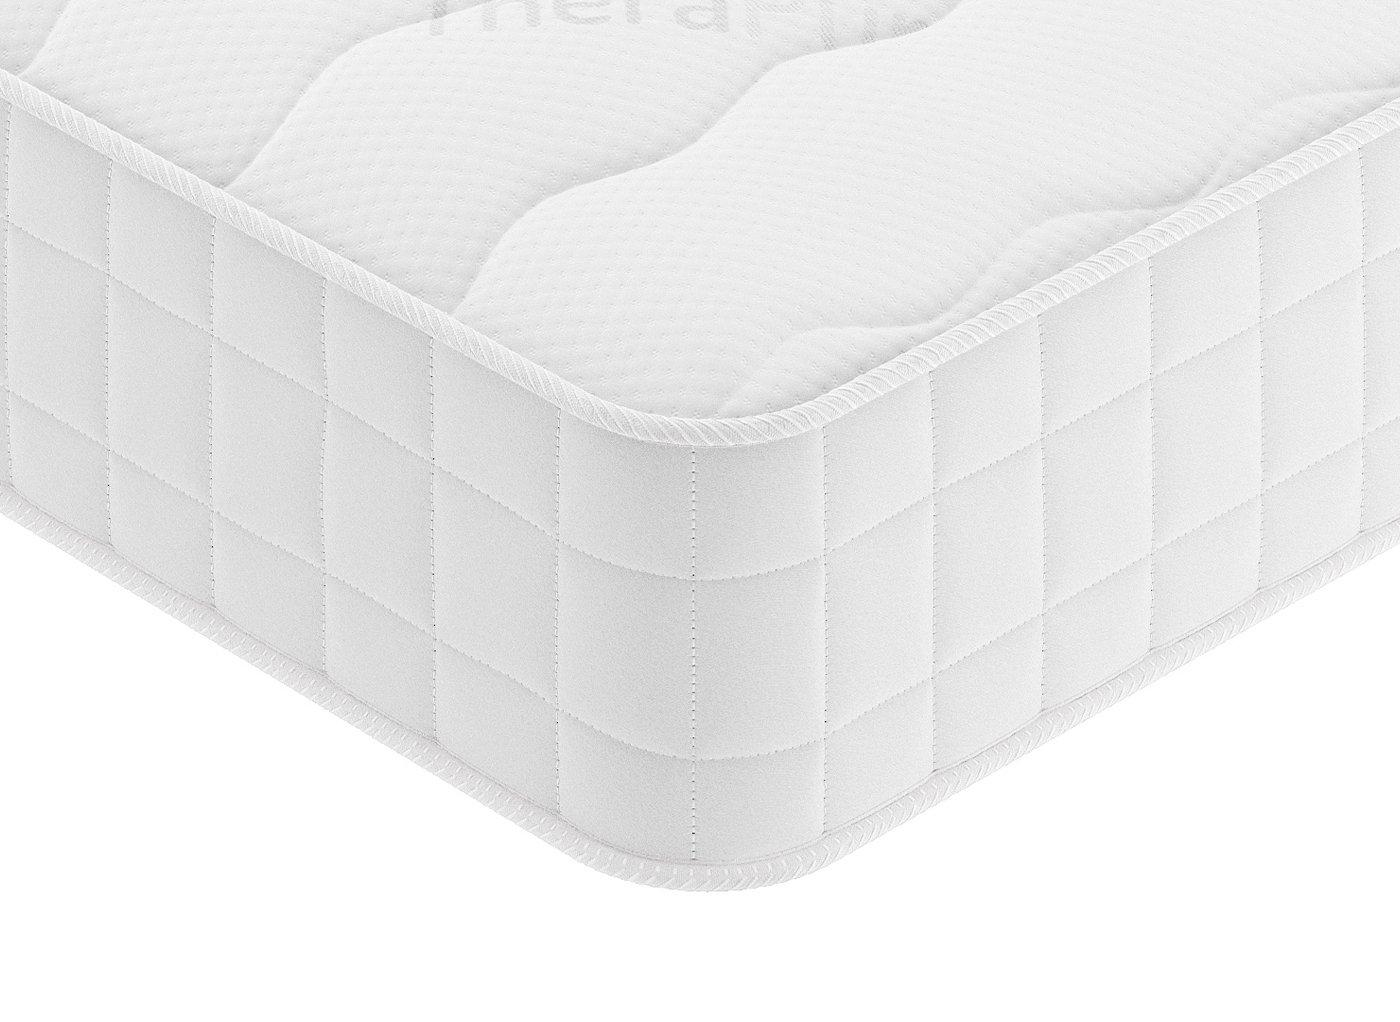 Therapur ActiGel Harmonic 800 S Mattress 3'0 Single